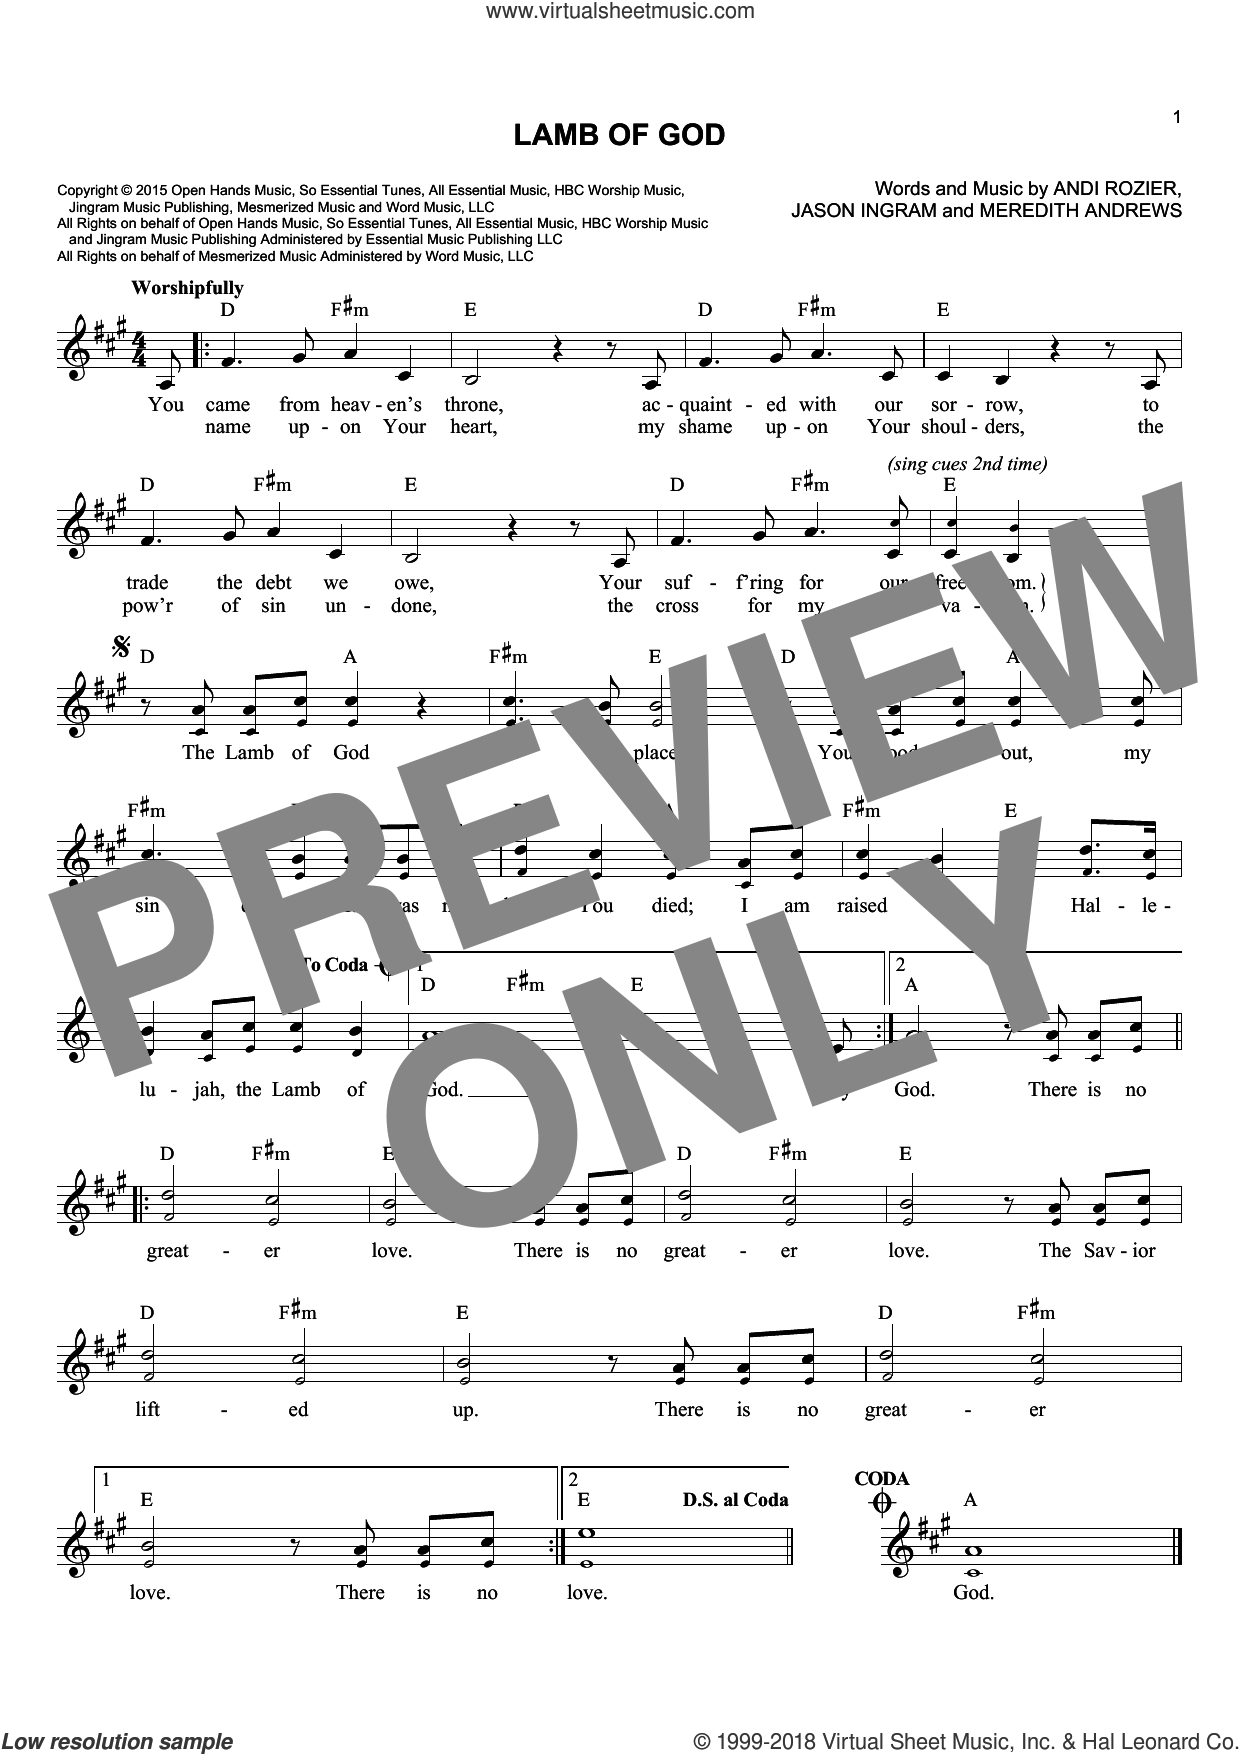 Lamb Of God sheet music for voice and other instruments (fake book) by Andi Rozier, Jason Ingram and Meredith Andrews, intermediate skill level